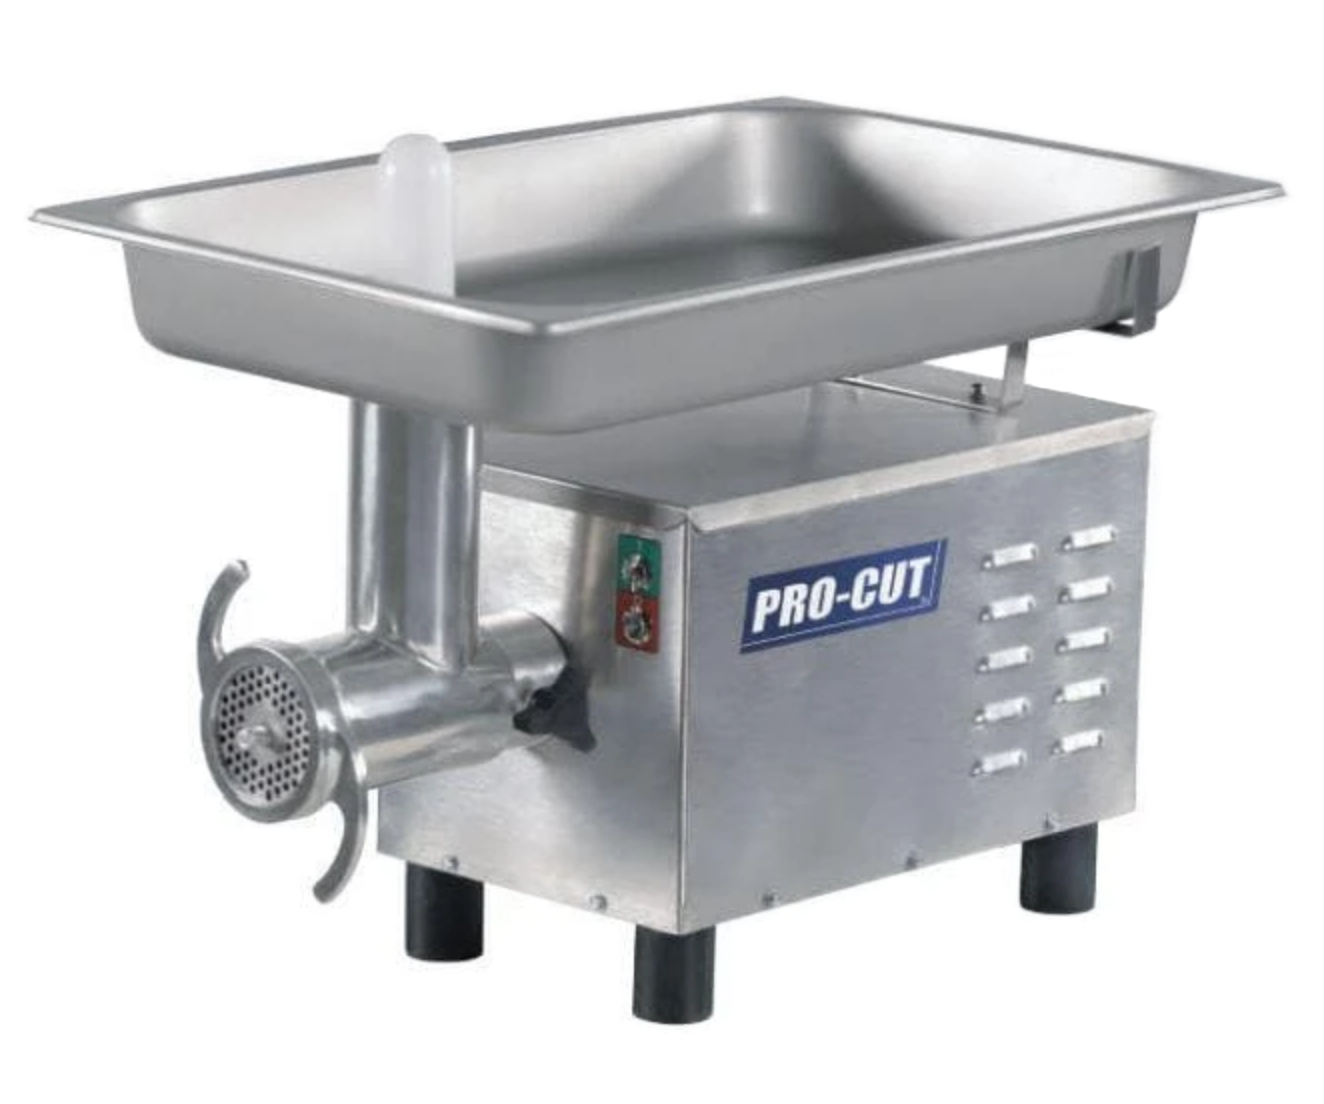 "Pro-Cut KG-12-SS Size 12 Meat Grinder - Large 20.8"" x 13"" Feeding Pan, 3/4 HP, 120V, Single Phase"